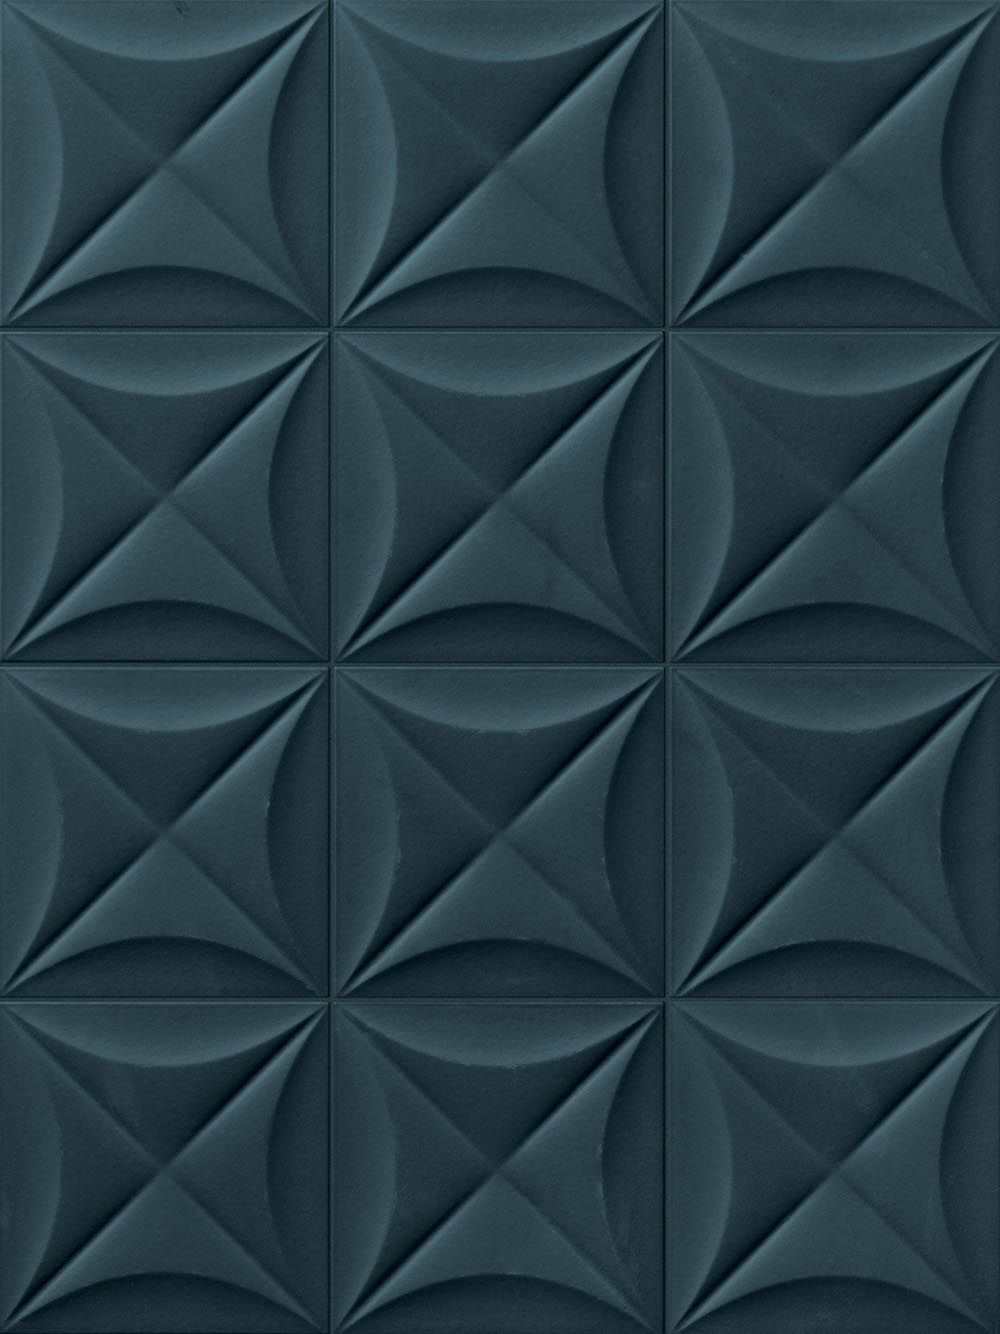 Multidimensional 3d Textured Ceramic Wall Tiles In 2020